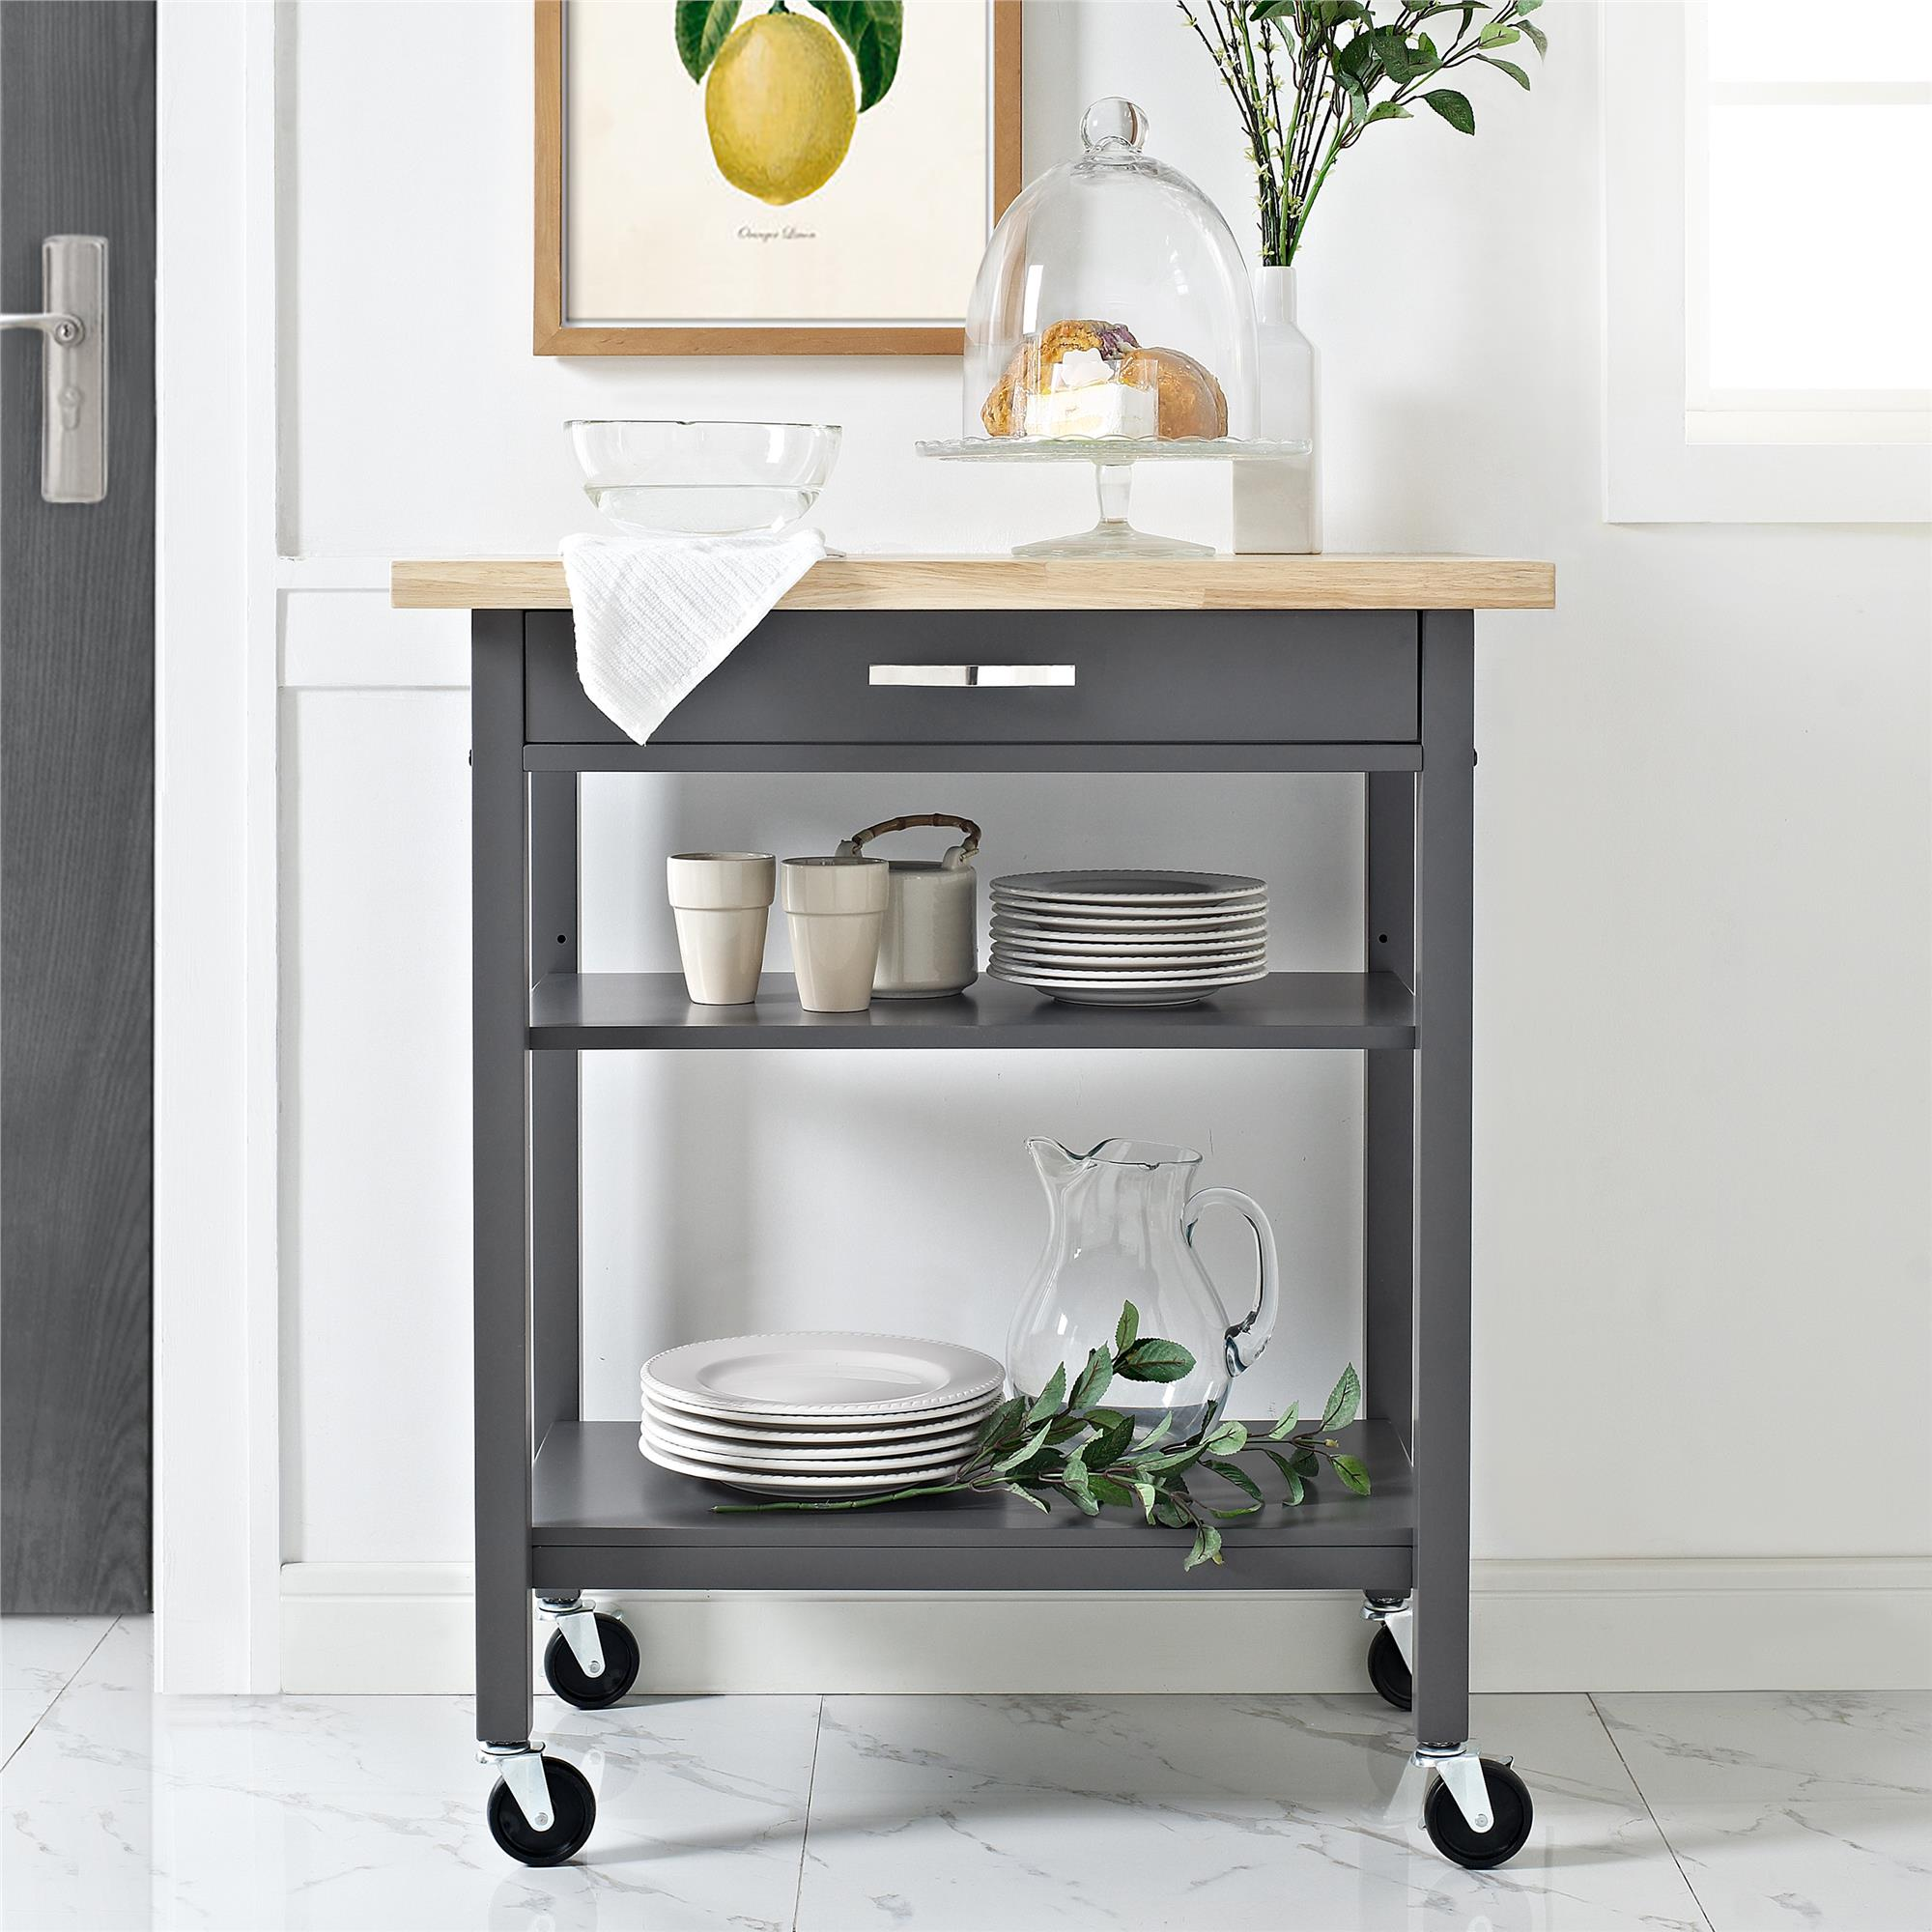 Mainstays Multifunction Kitchen Cart, Multiple Colors